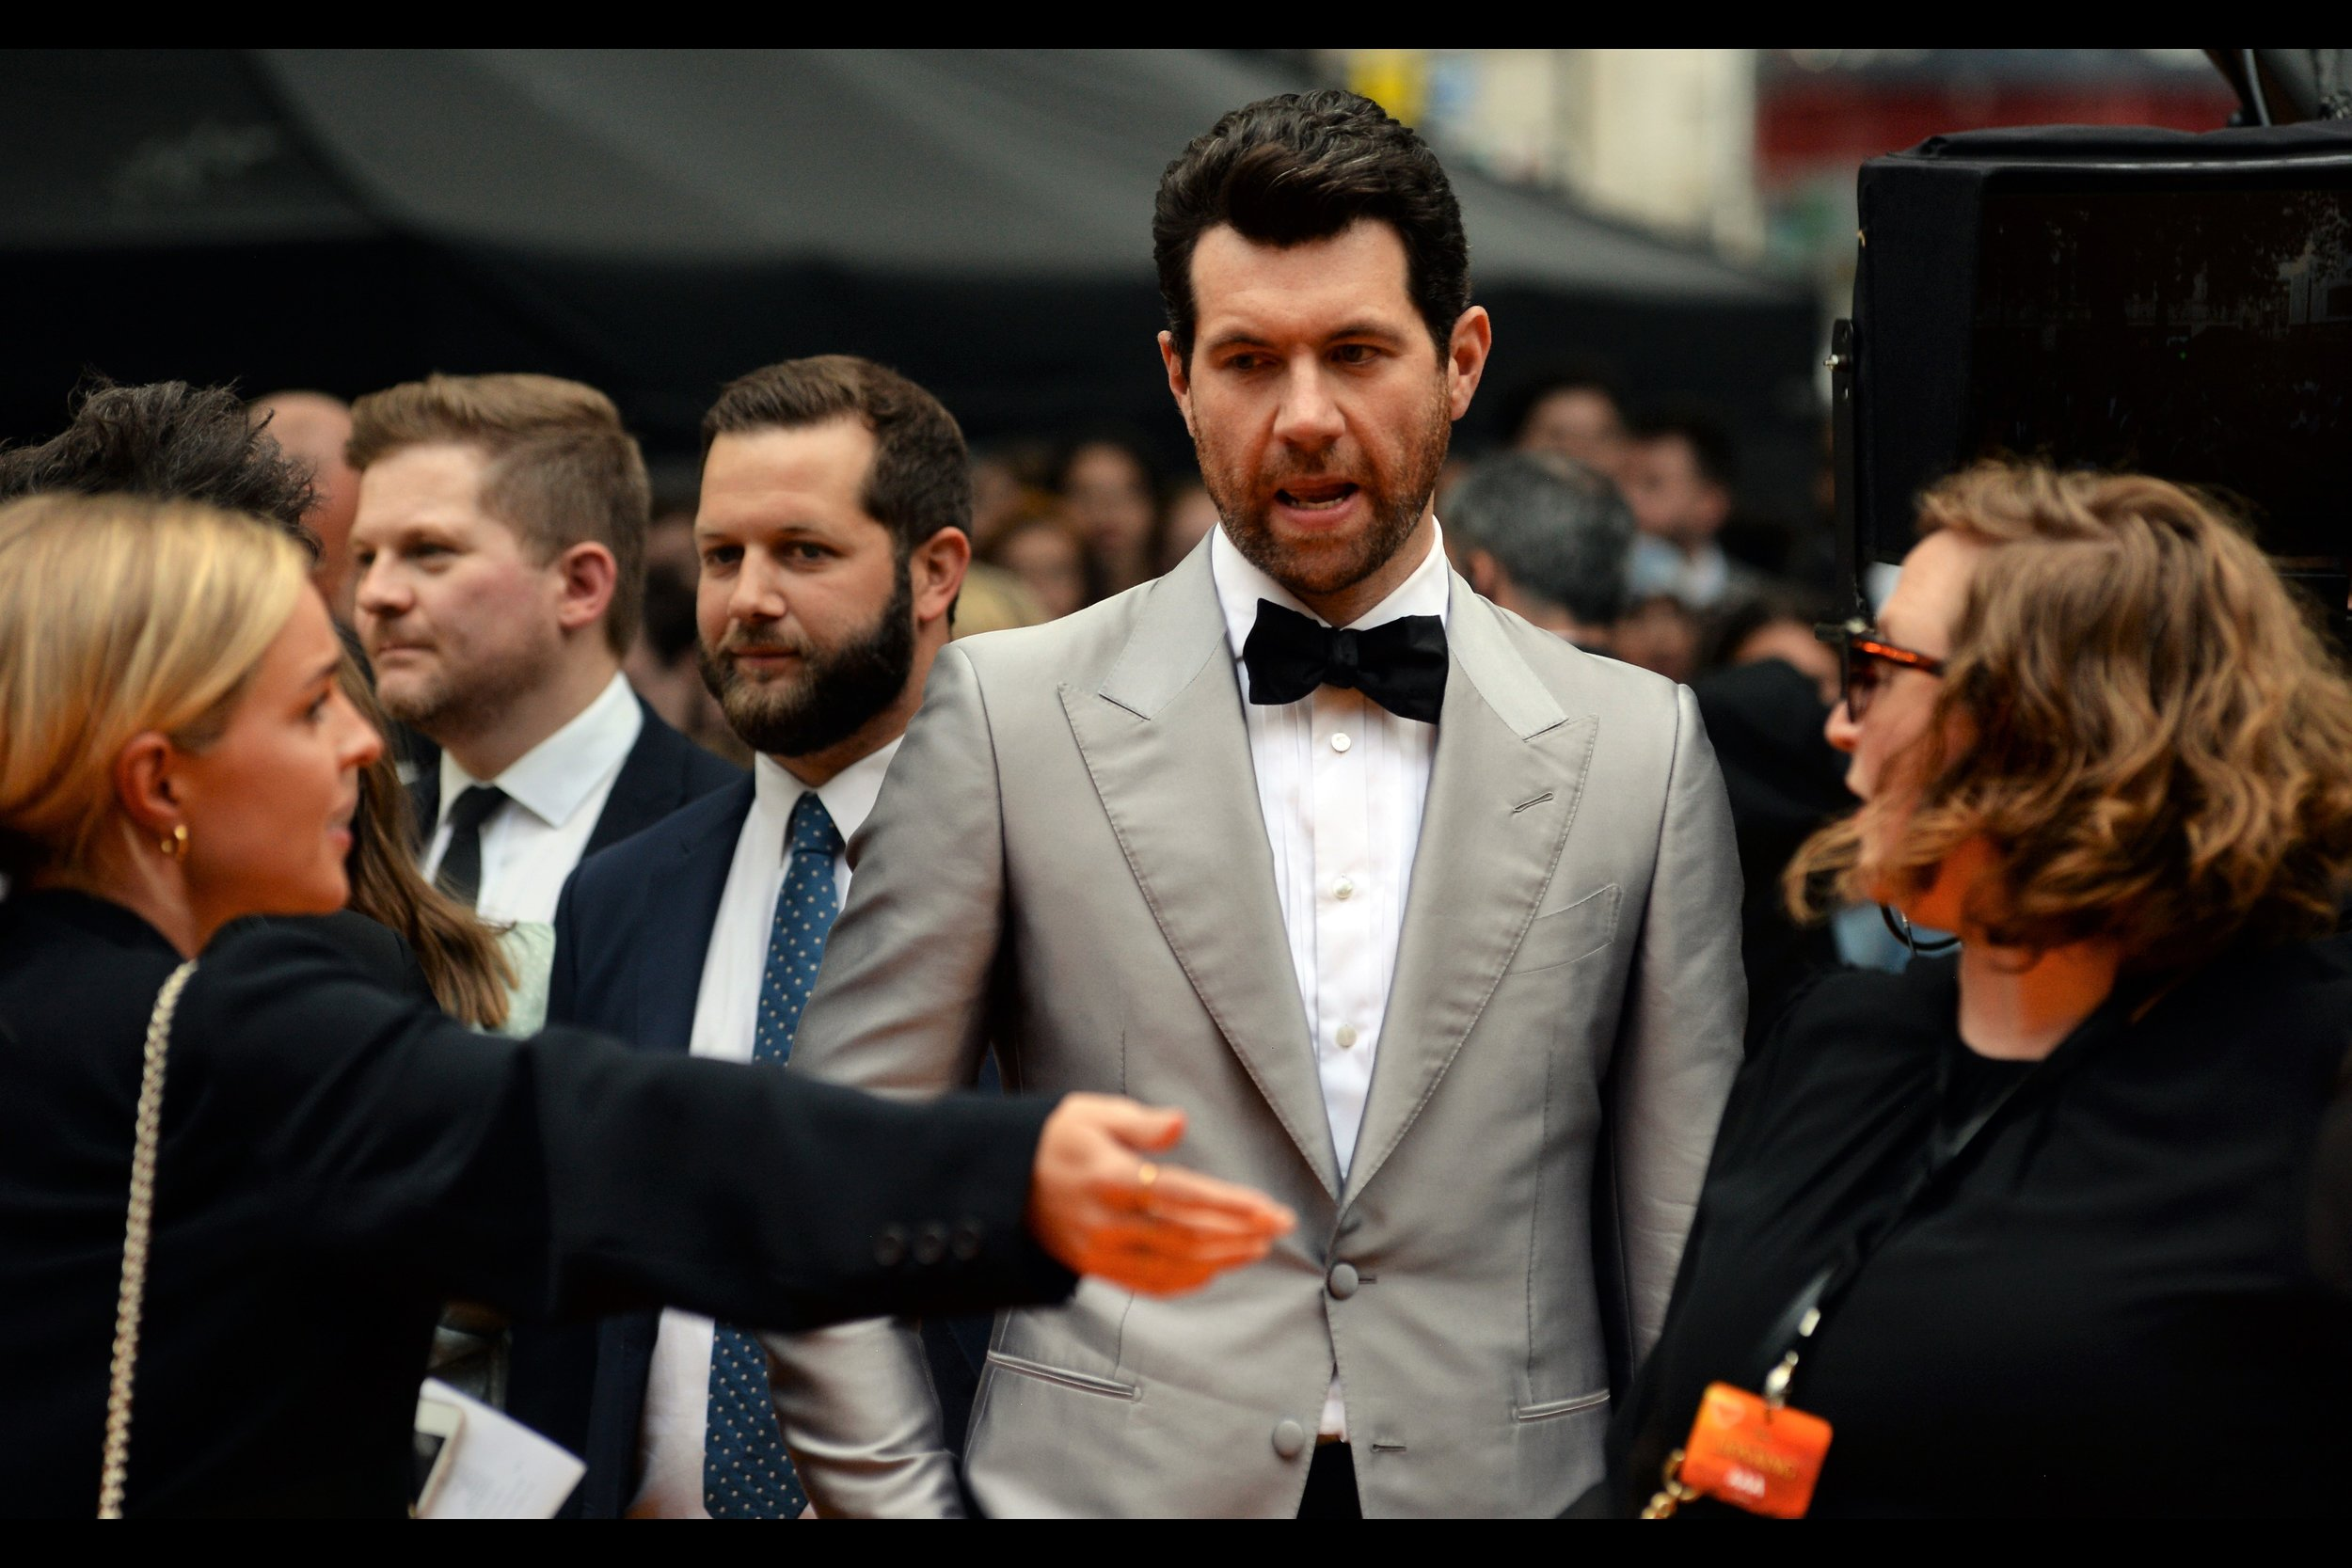 """You didn't have to write the answers to the questions they're about to ask me on your hand. I don't think they'll be THAT hard….""  Comedian Billy Eichner plays the role of the meerkat Timon in the film."